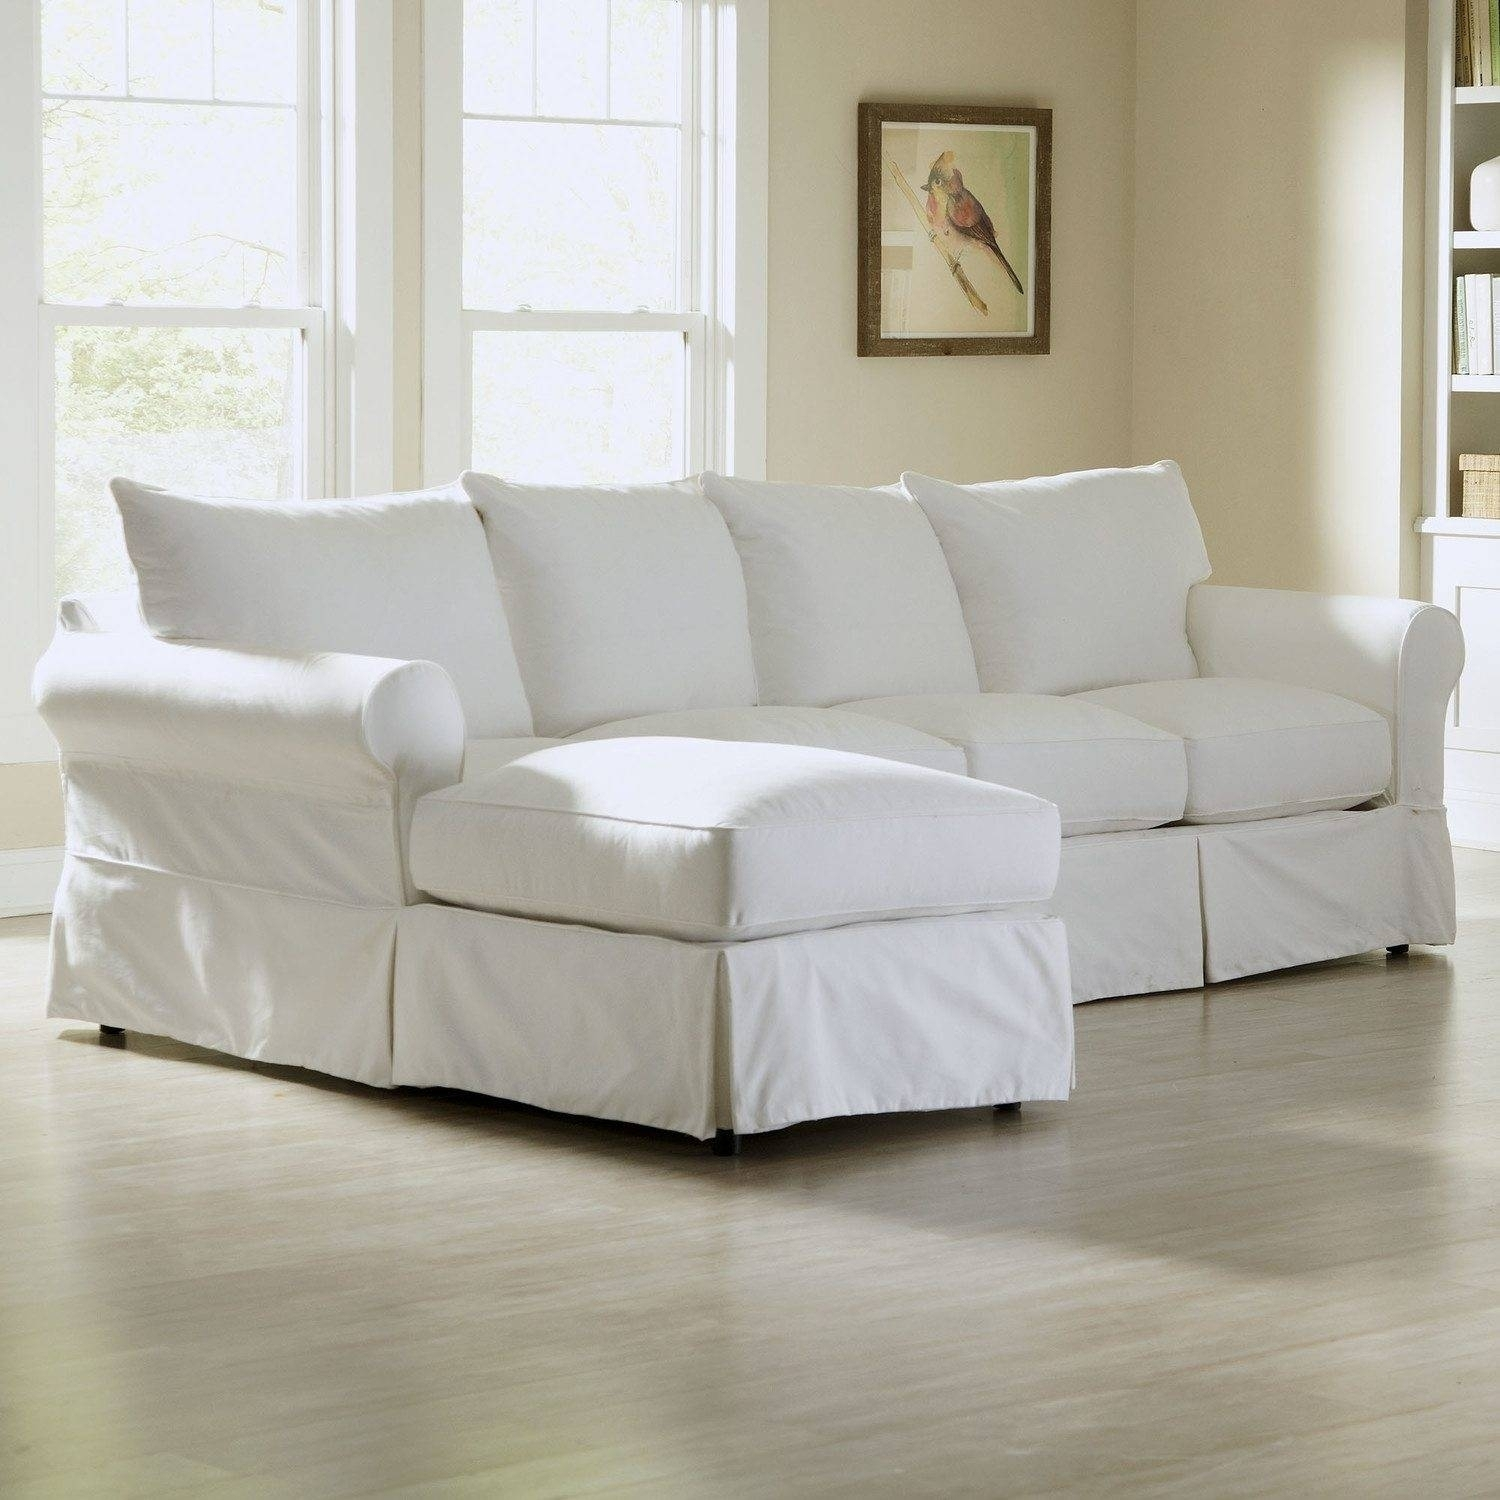 Elegant Down Sectional Sofa – Mediasupload Within Goose Down Sectional Sofas (Image 5 of 10)